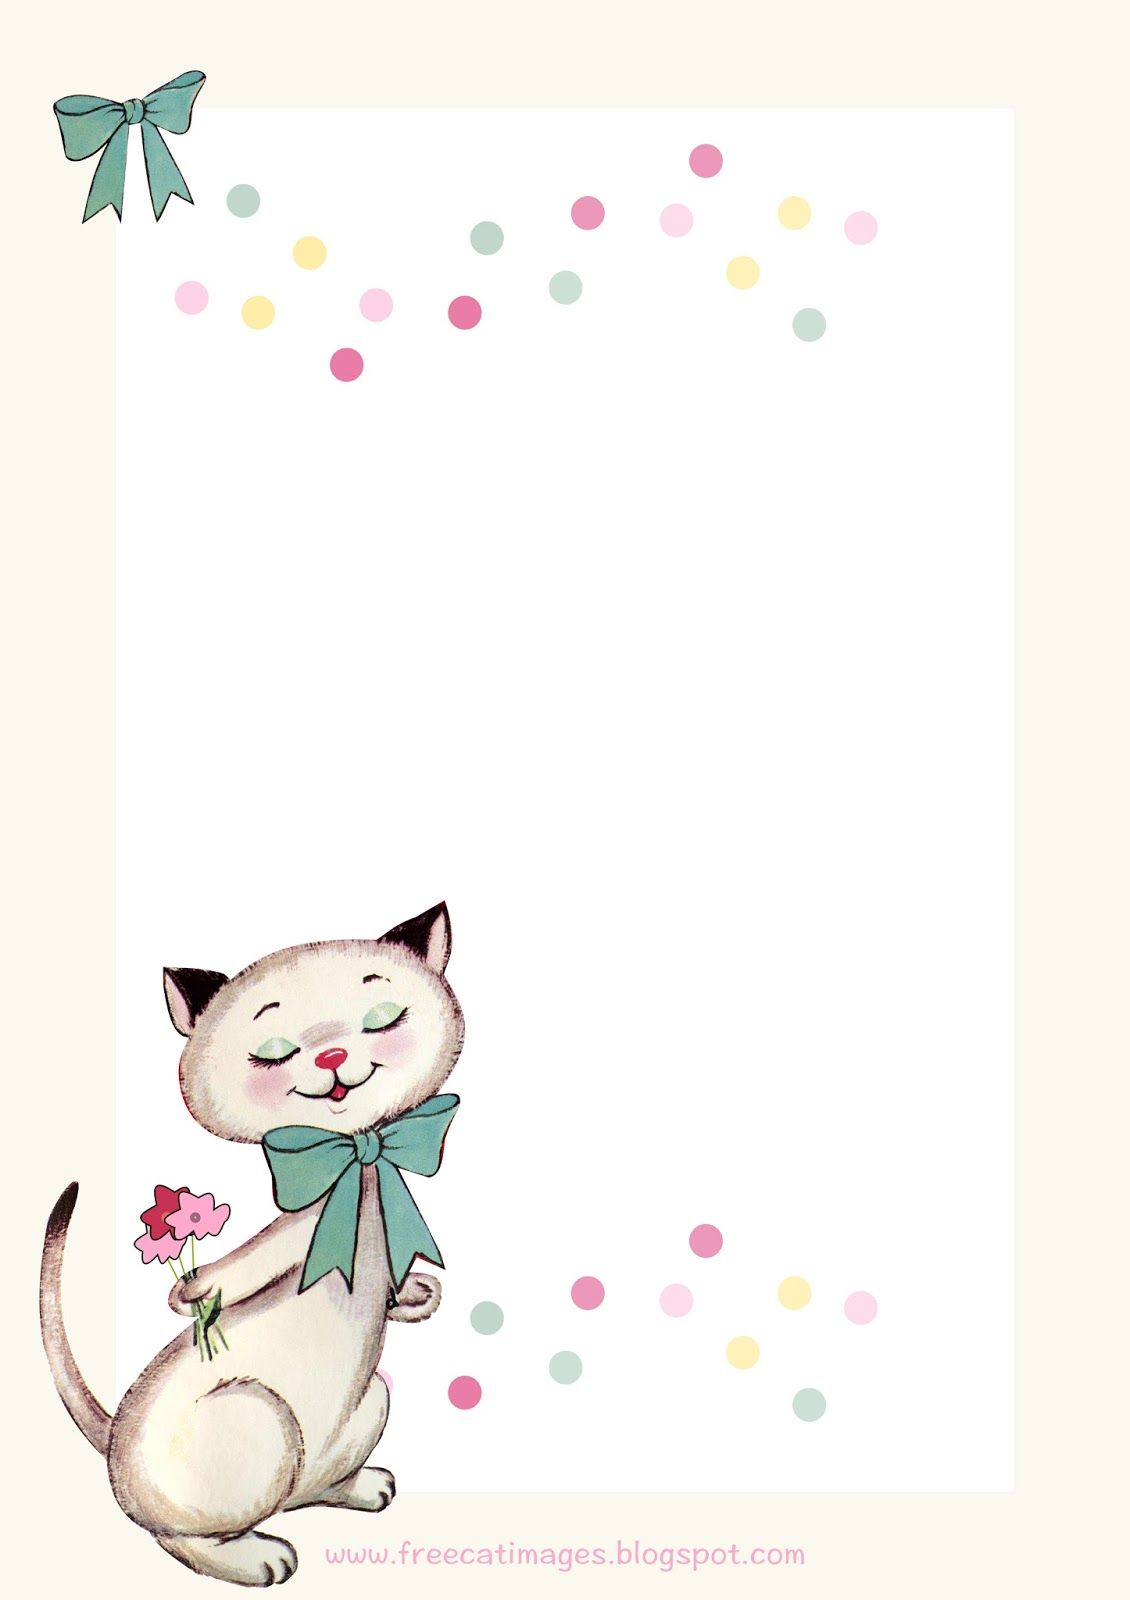 Free Cat Images Free Printable Vintage Kitty Stationery Freebie